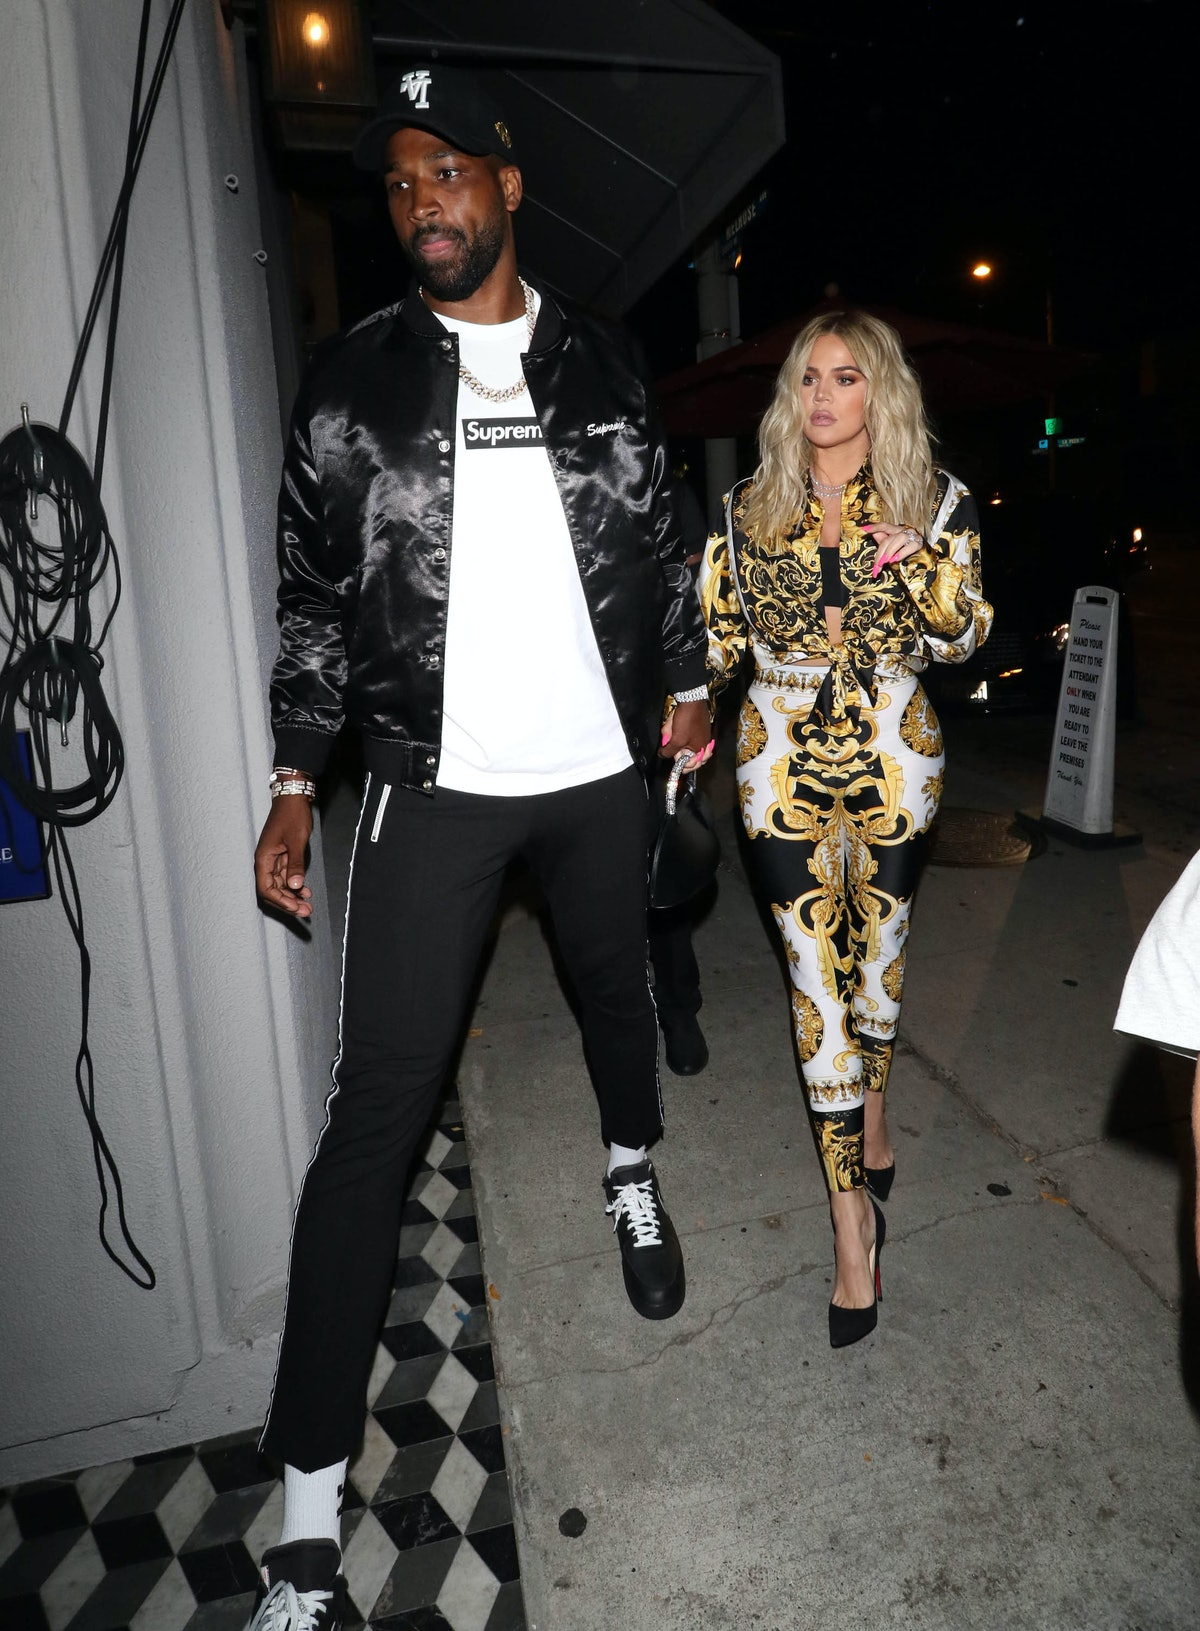 Khloe Kardashian and Tristan Thompson are seen on August 17, 2018 in Los Angeles, CA.